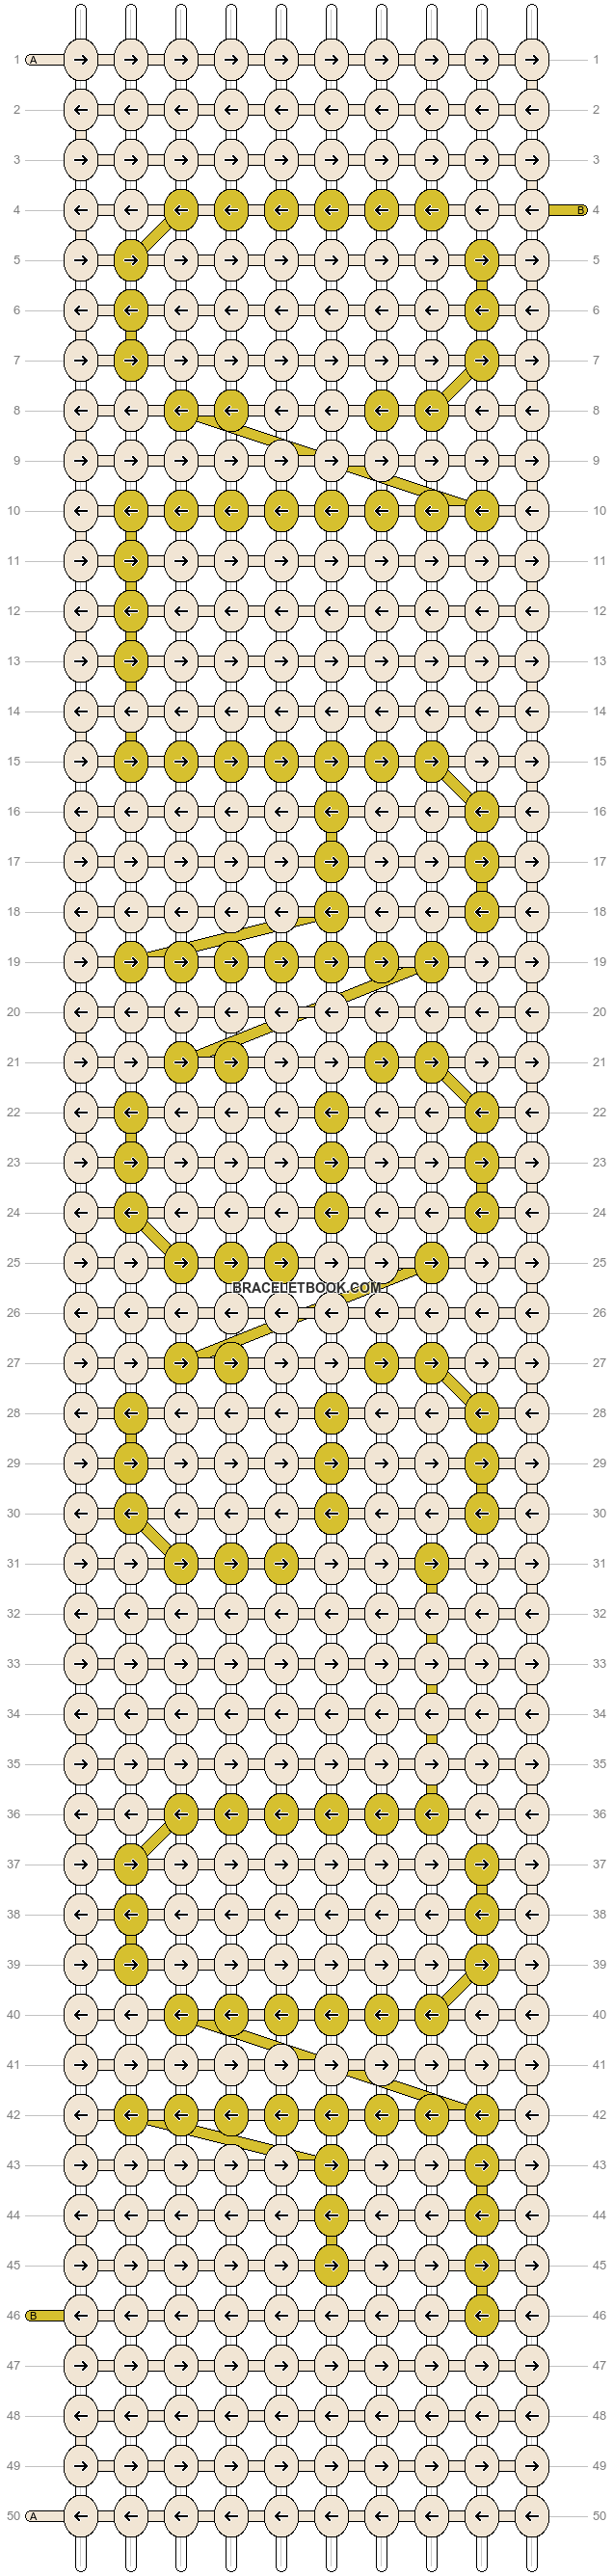 Alpha Pattern #1129 added by Spartan